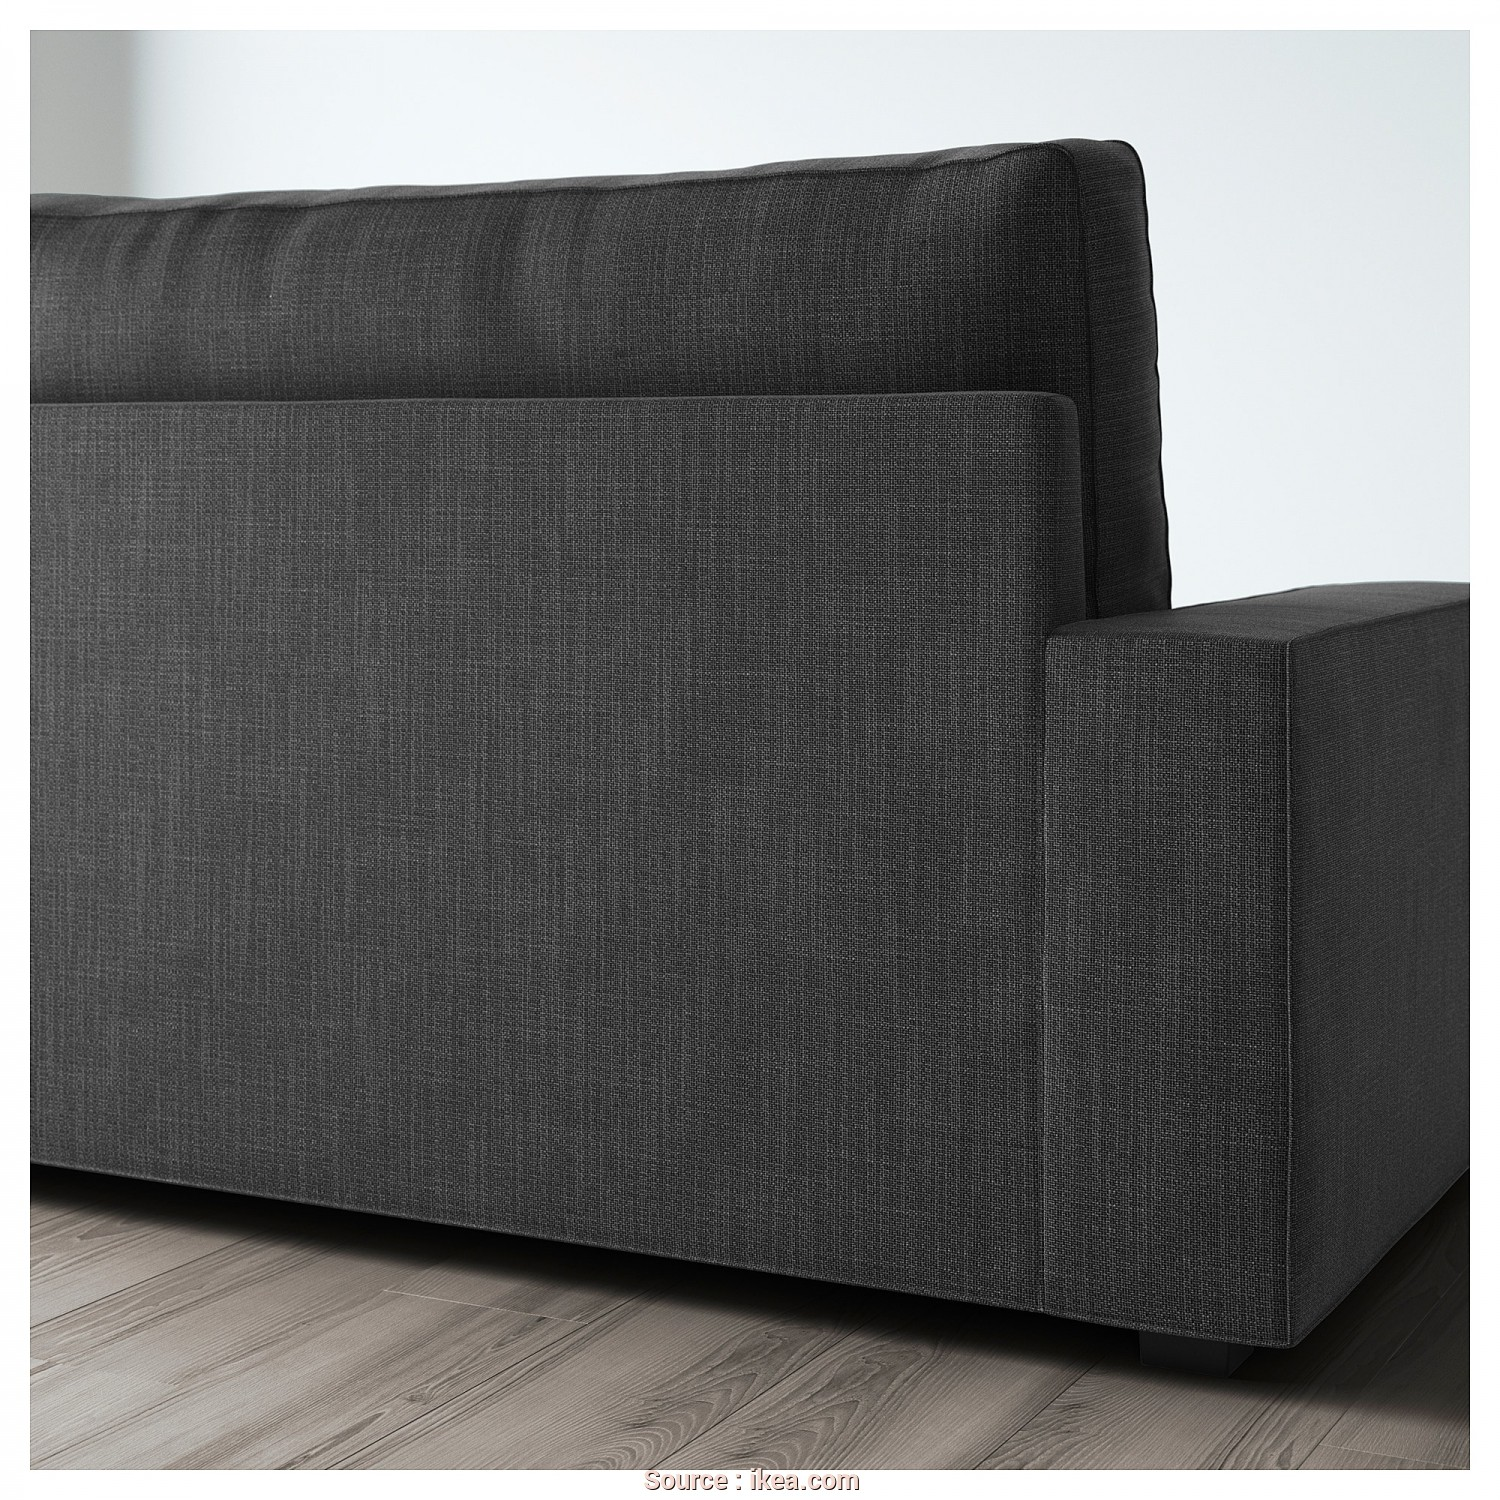 Ikea Vilasund 2 Seat Sofa, Review, Migliore VILASUND Two-Seat Sofa-Bed Hillared Anthracite